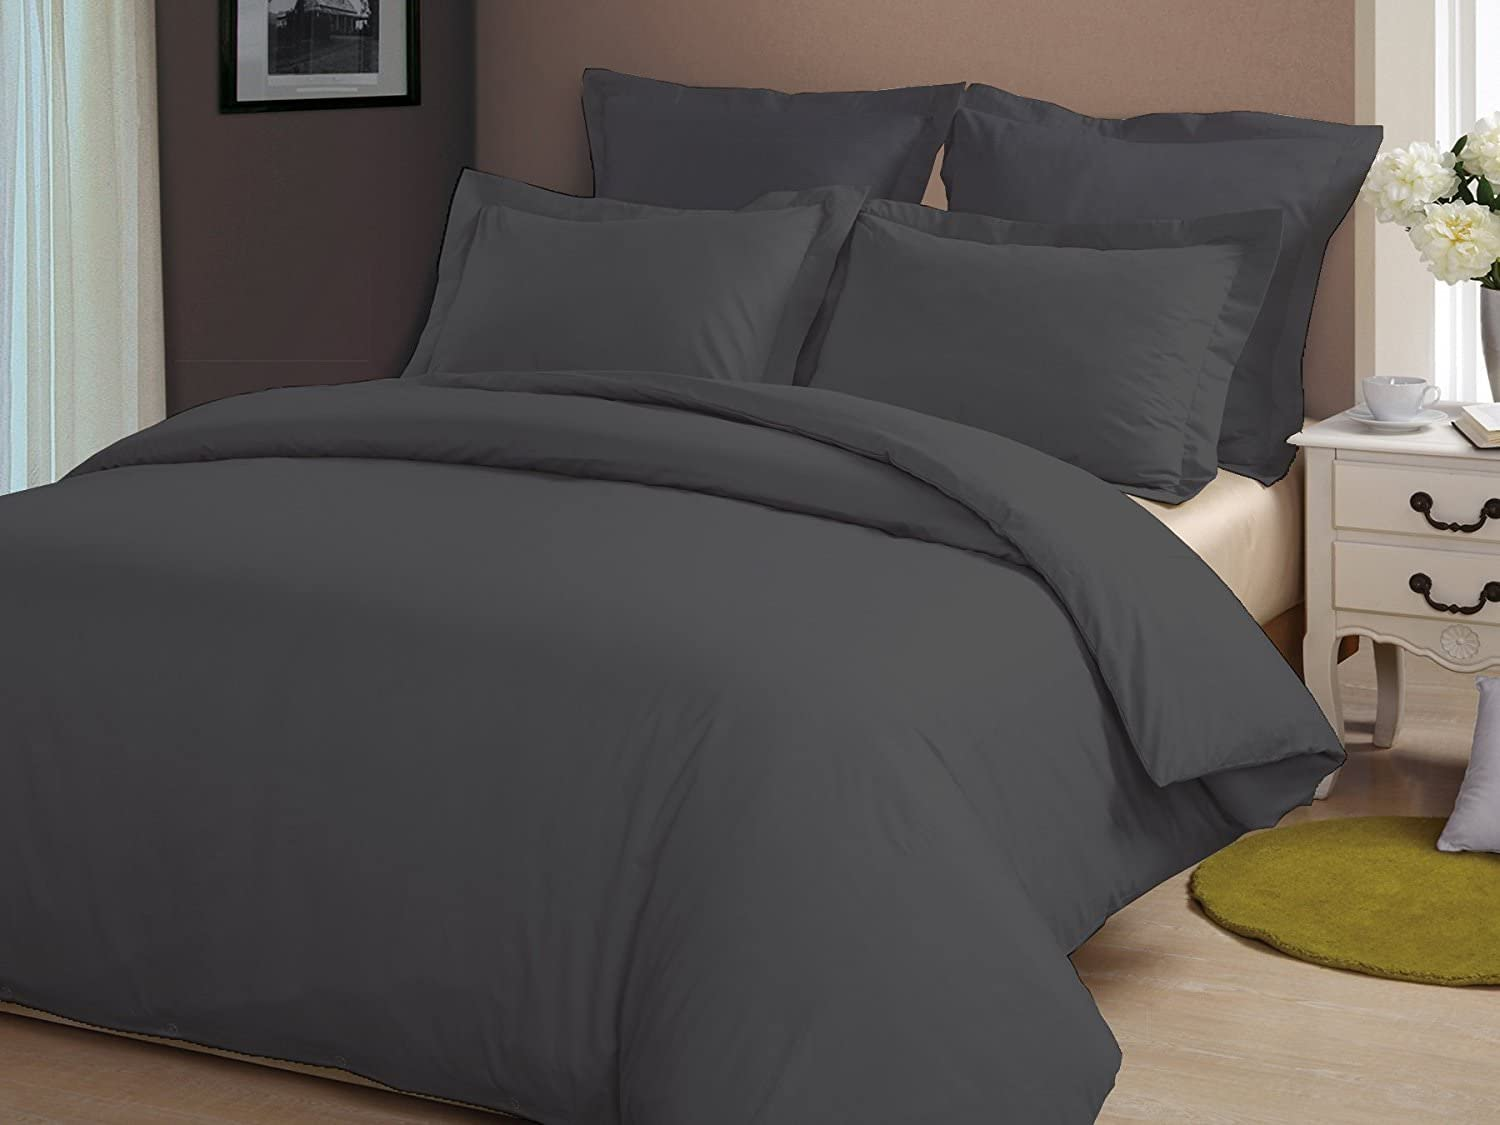 Soft Hypoallergenic Size 90 x 90 Inch Whitecottonworld Hotel Luxury Egyptian Cotton 800 Thread Count Zipper Closer 1-Pieces Duvet Cover with Corner Ties White Solid Full//Queen